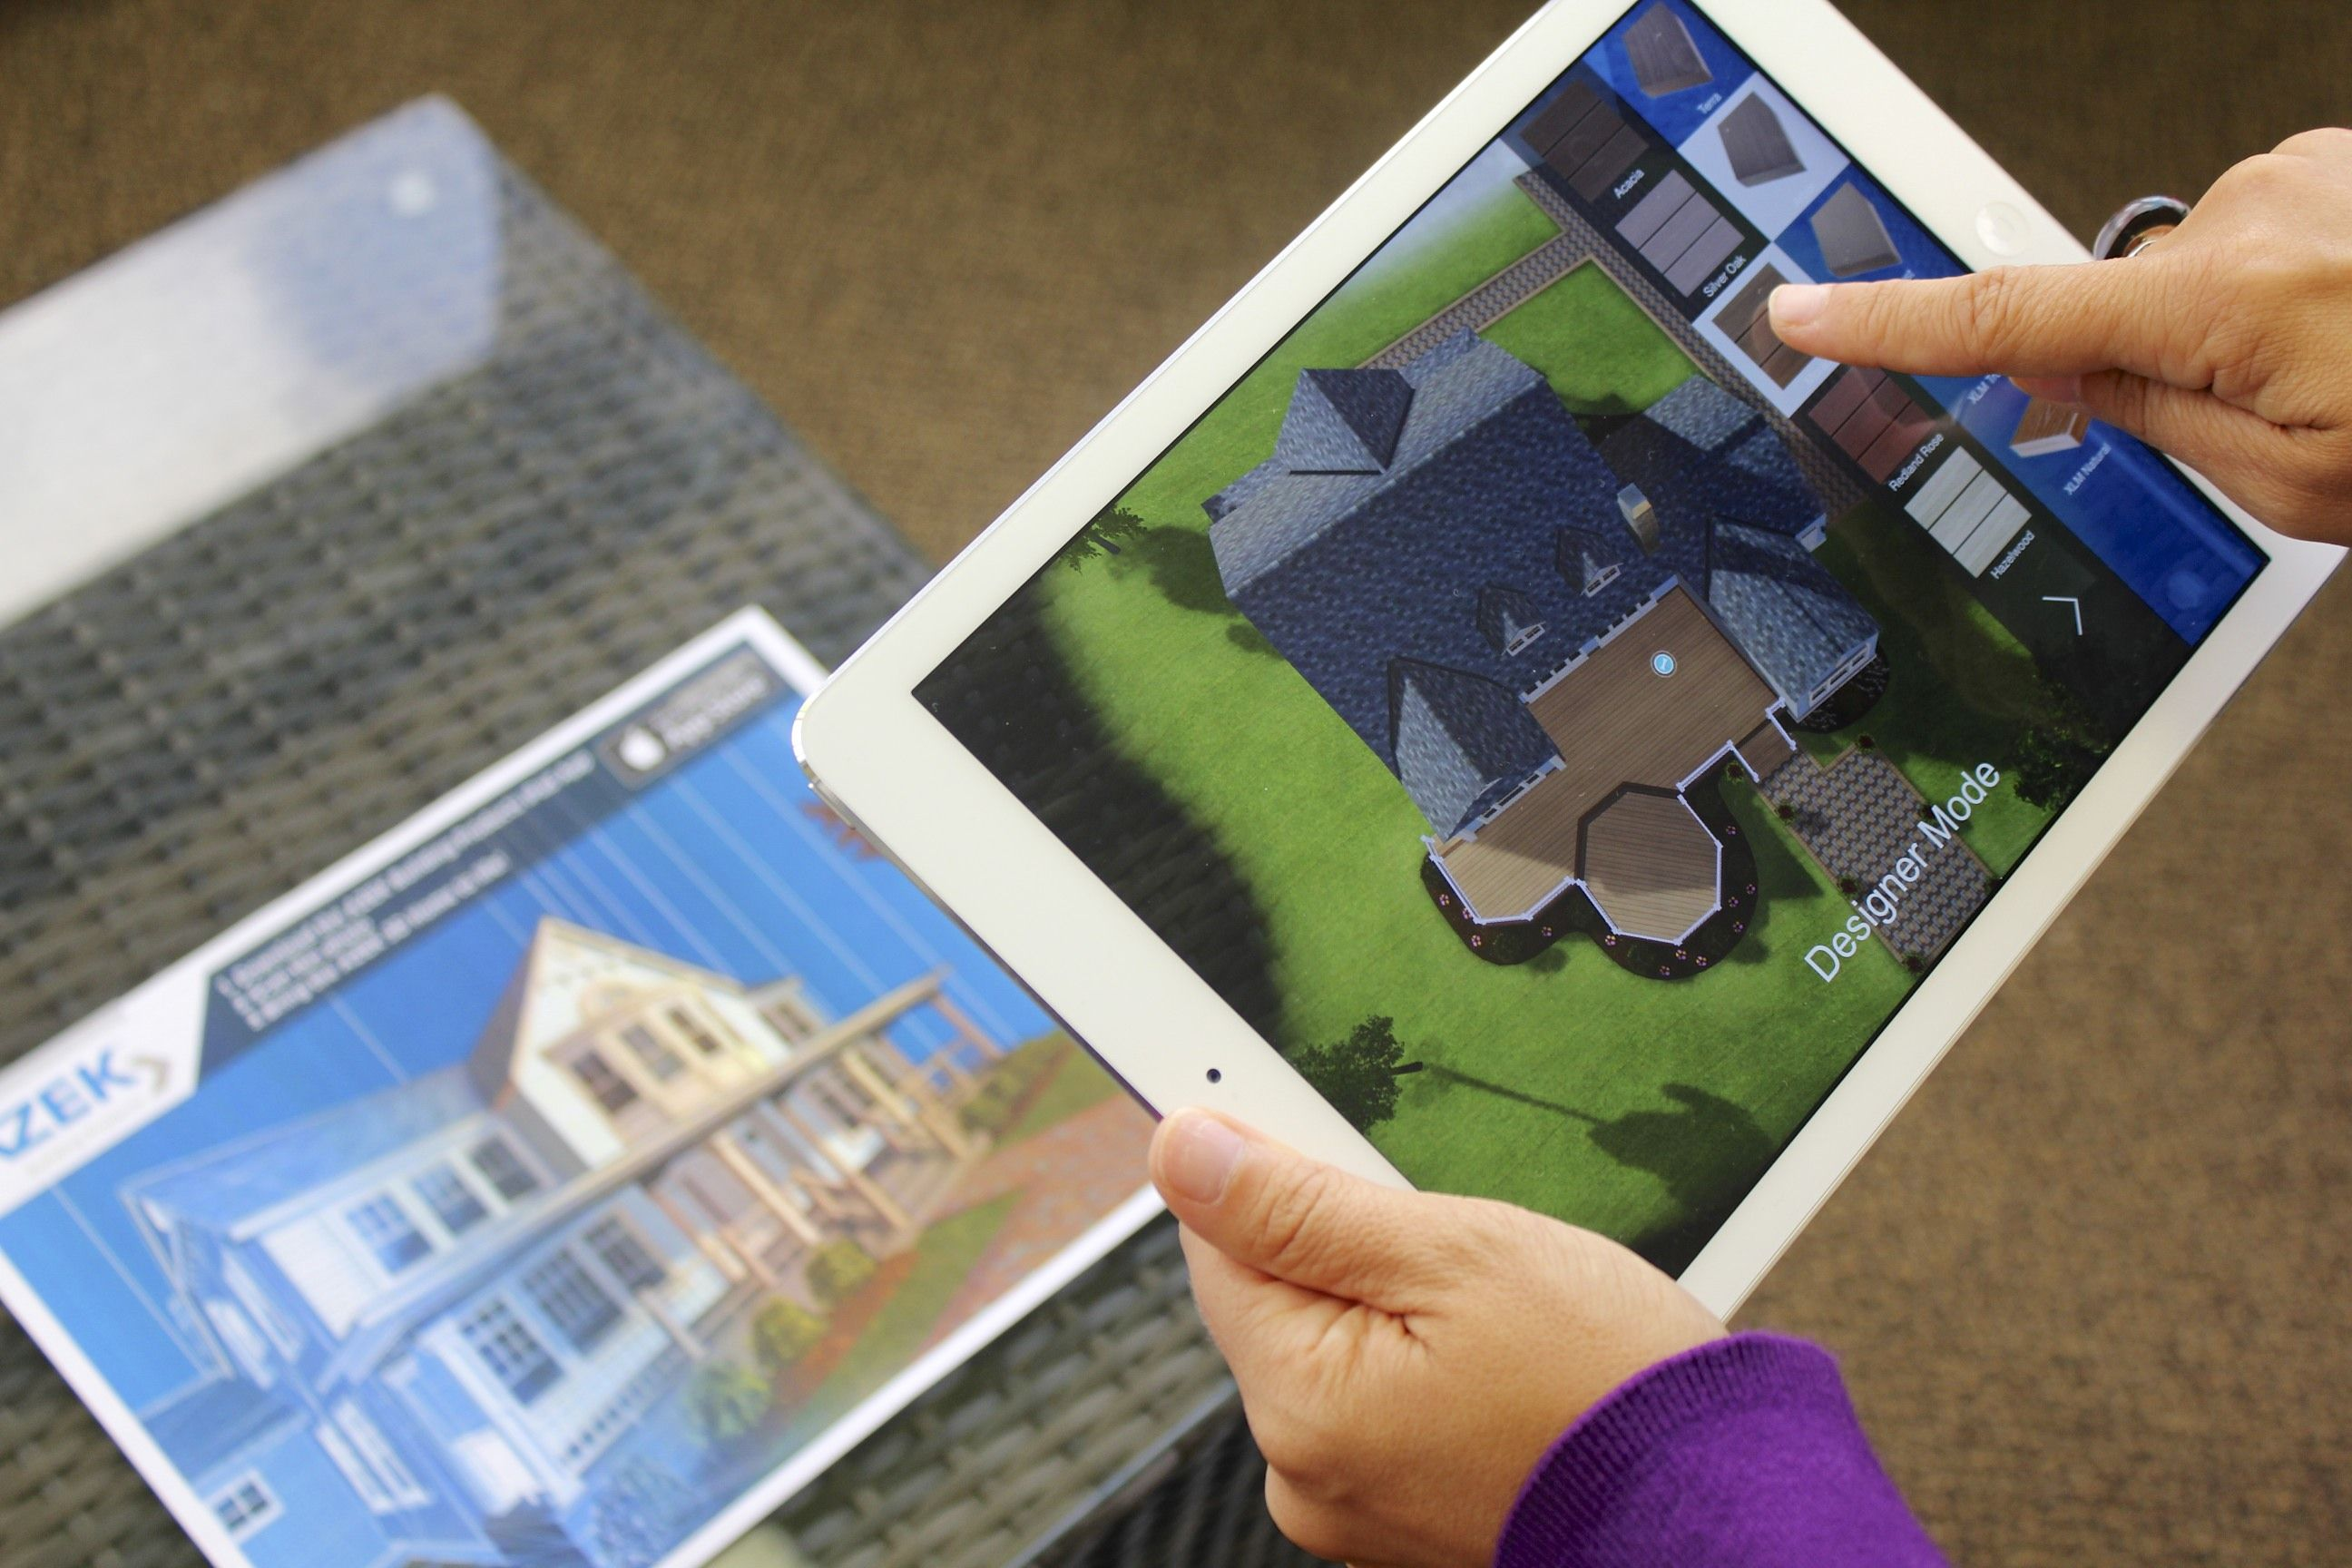 """Using an iPad, scan a """"visualization marker"""", such as the"""